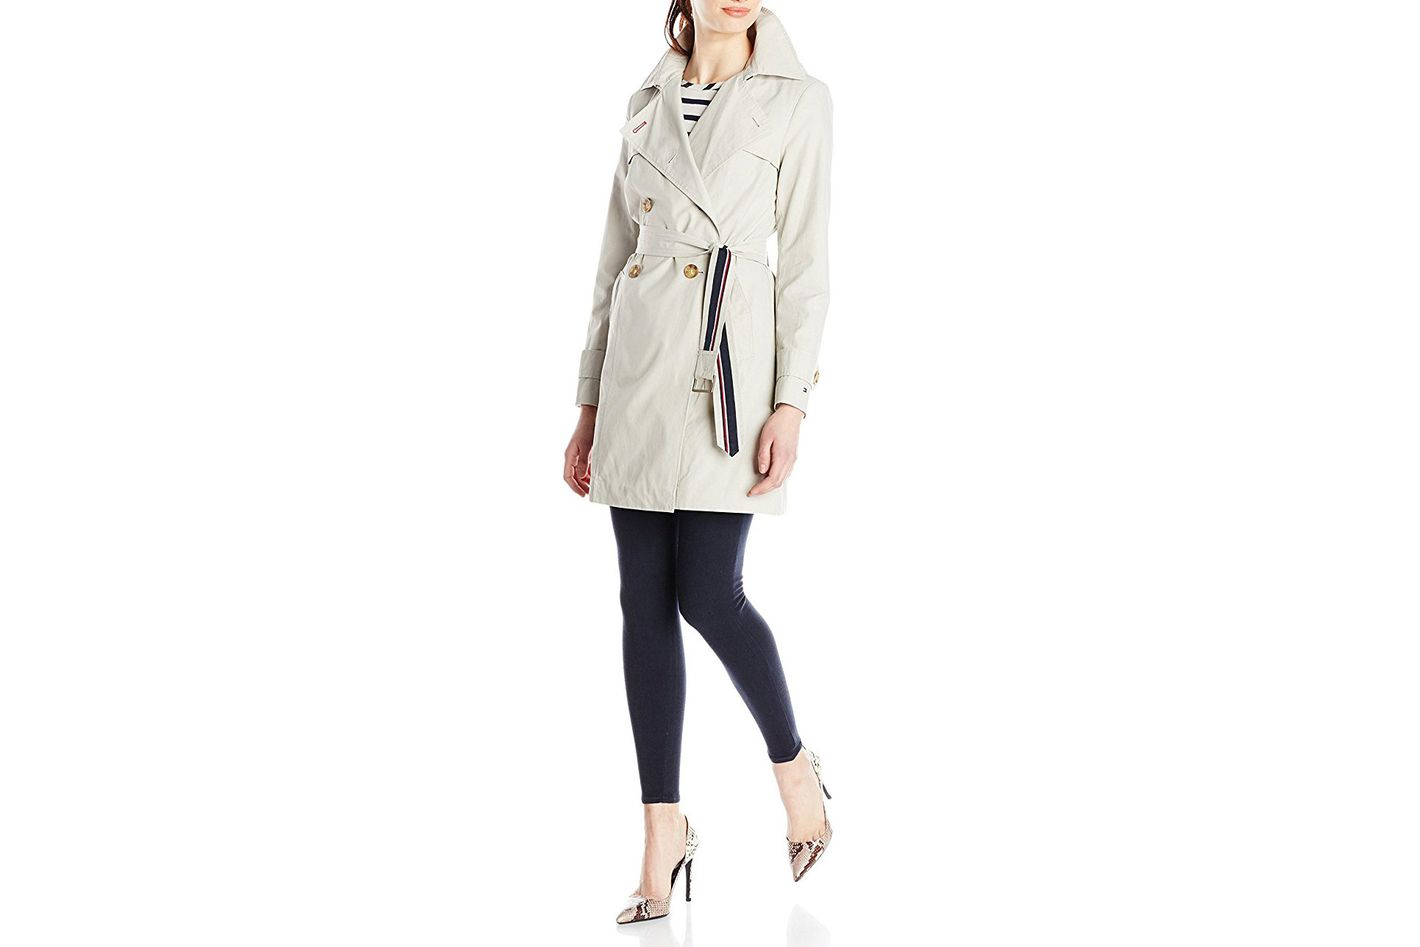 Tommy Hilfiger double-breasted trench coat with striped belt